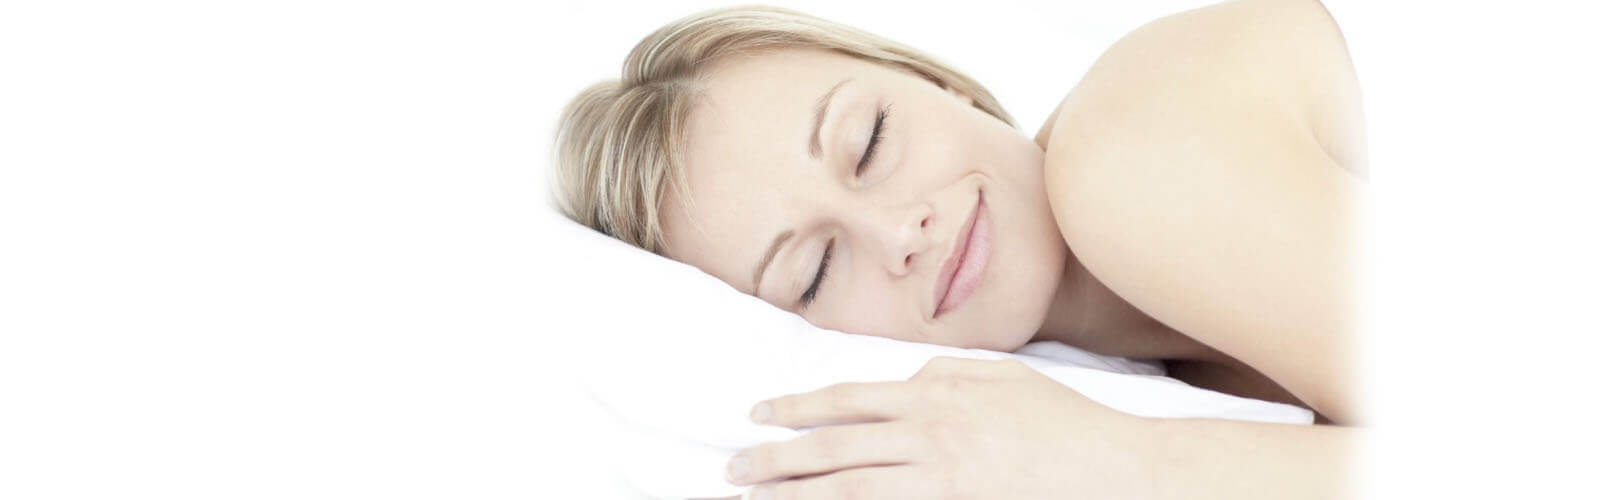 Using sleep dentistry to take the fear out of dental visits